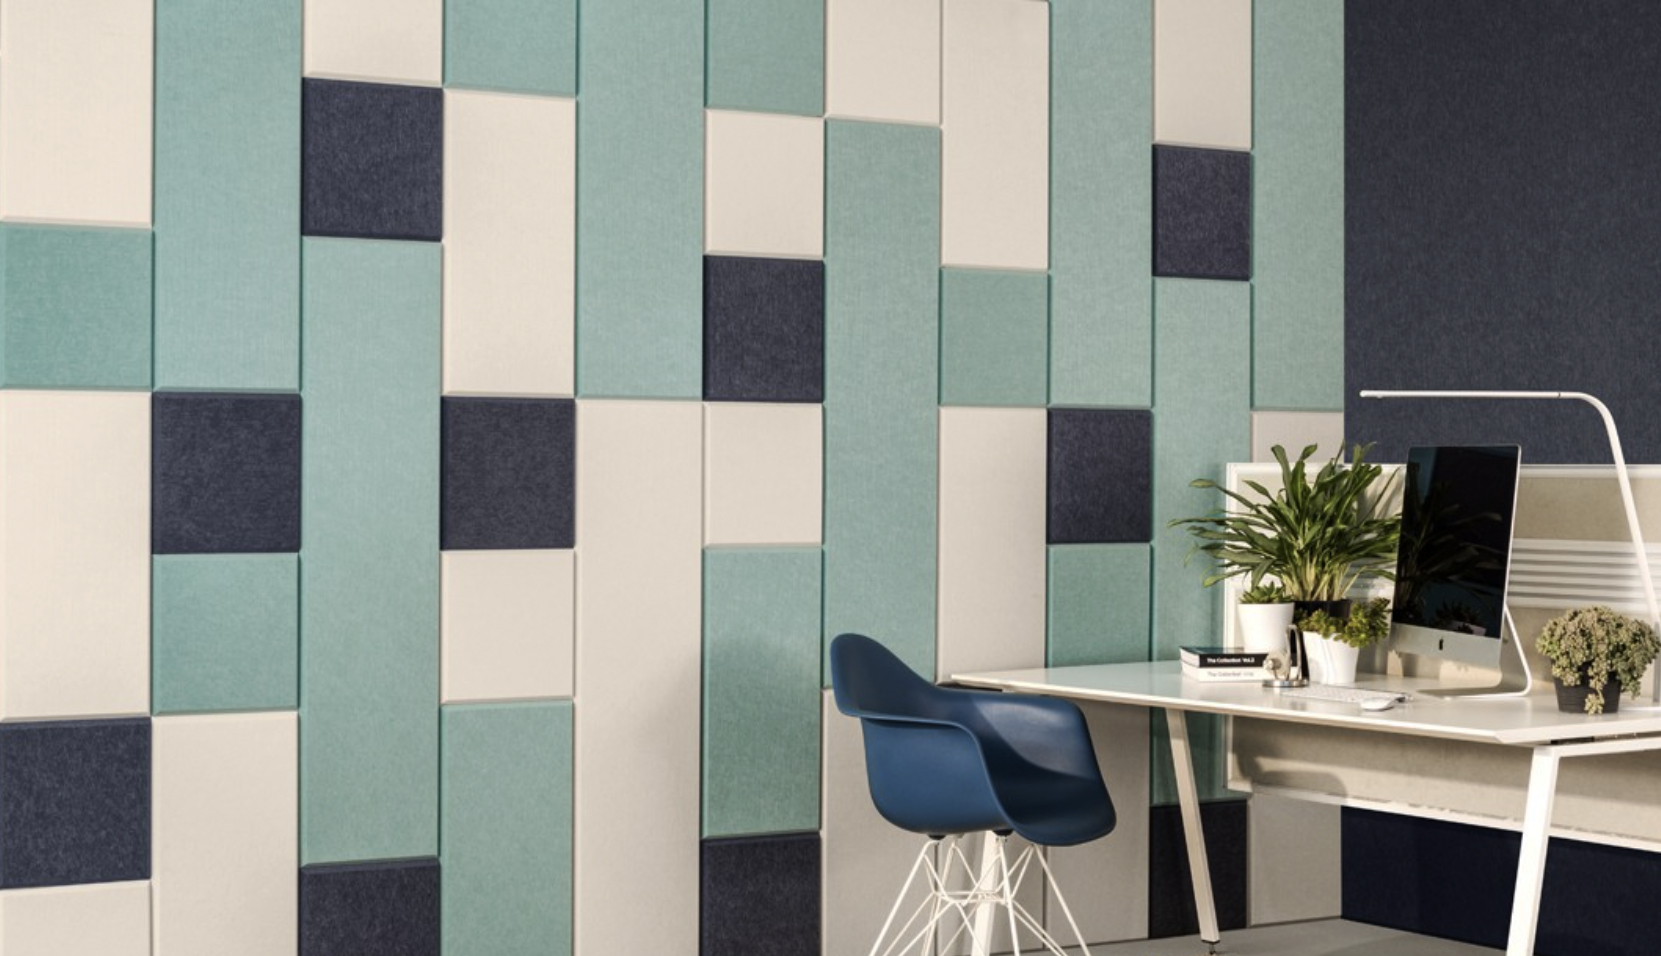 Have some fun with ECHOPANEL acoustic panel tiles